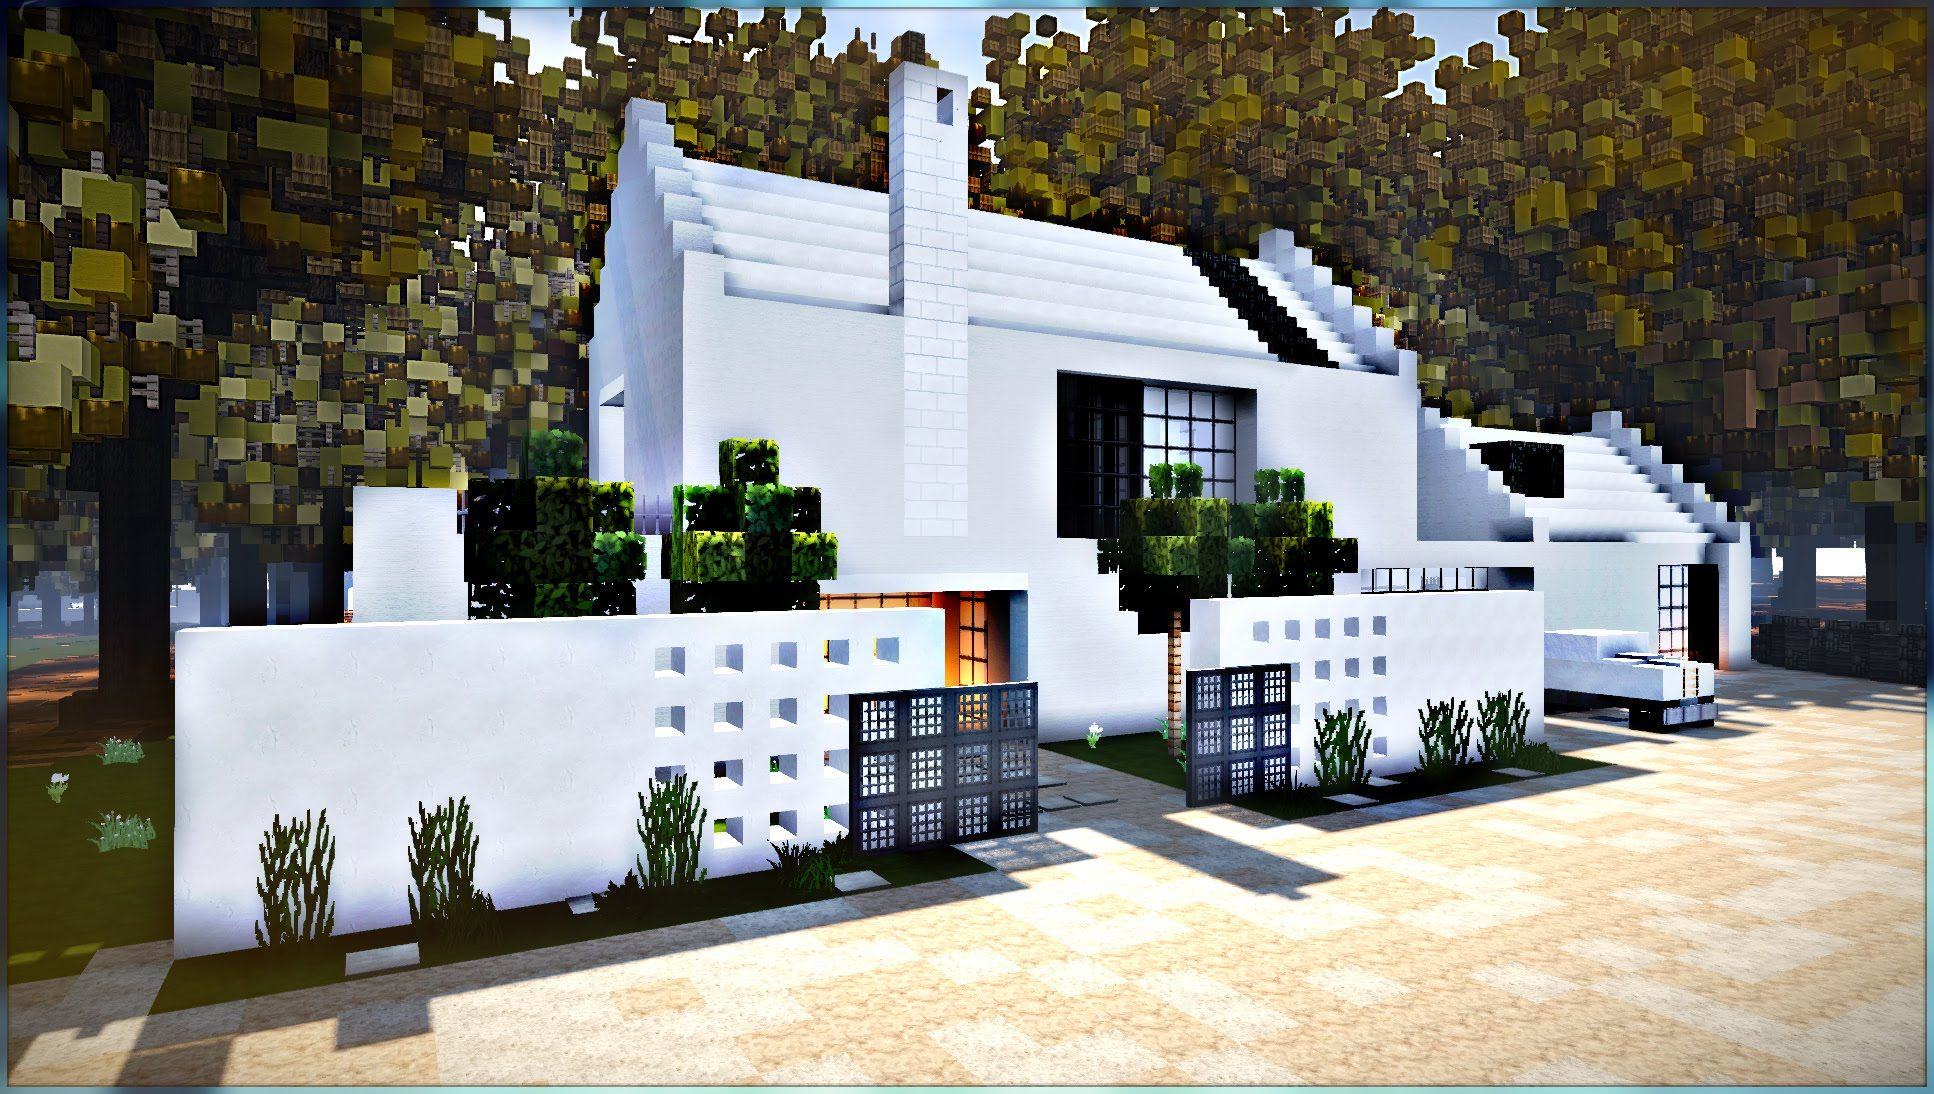 1000+ images about minecraft modern house on Pinterest  Small ... - ^